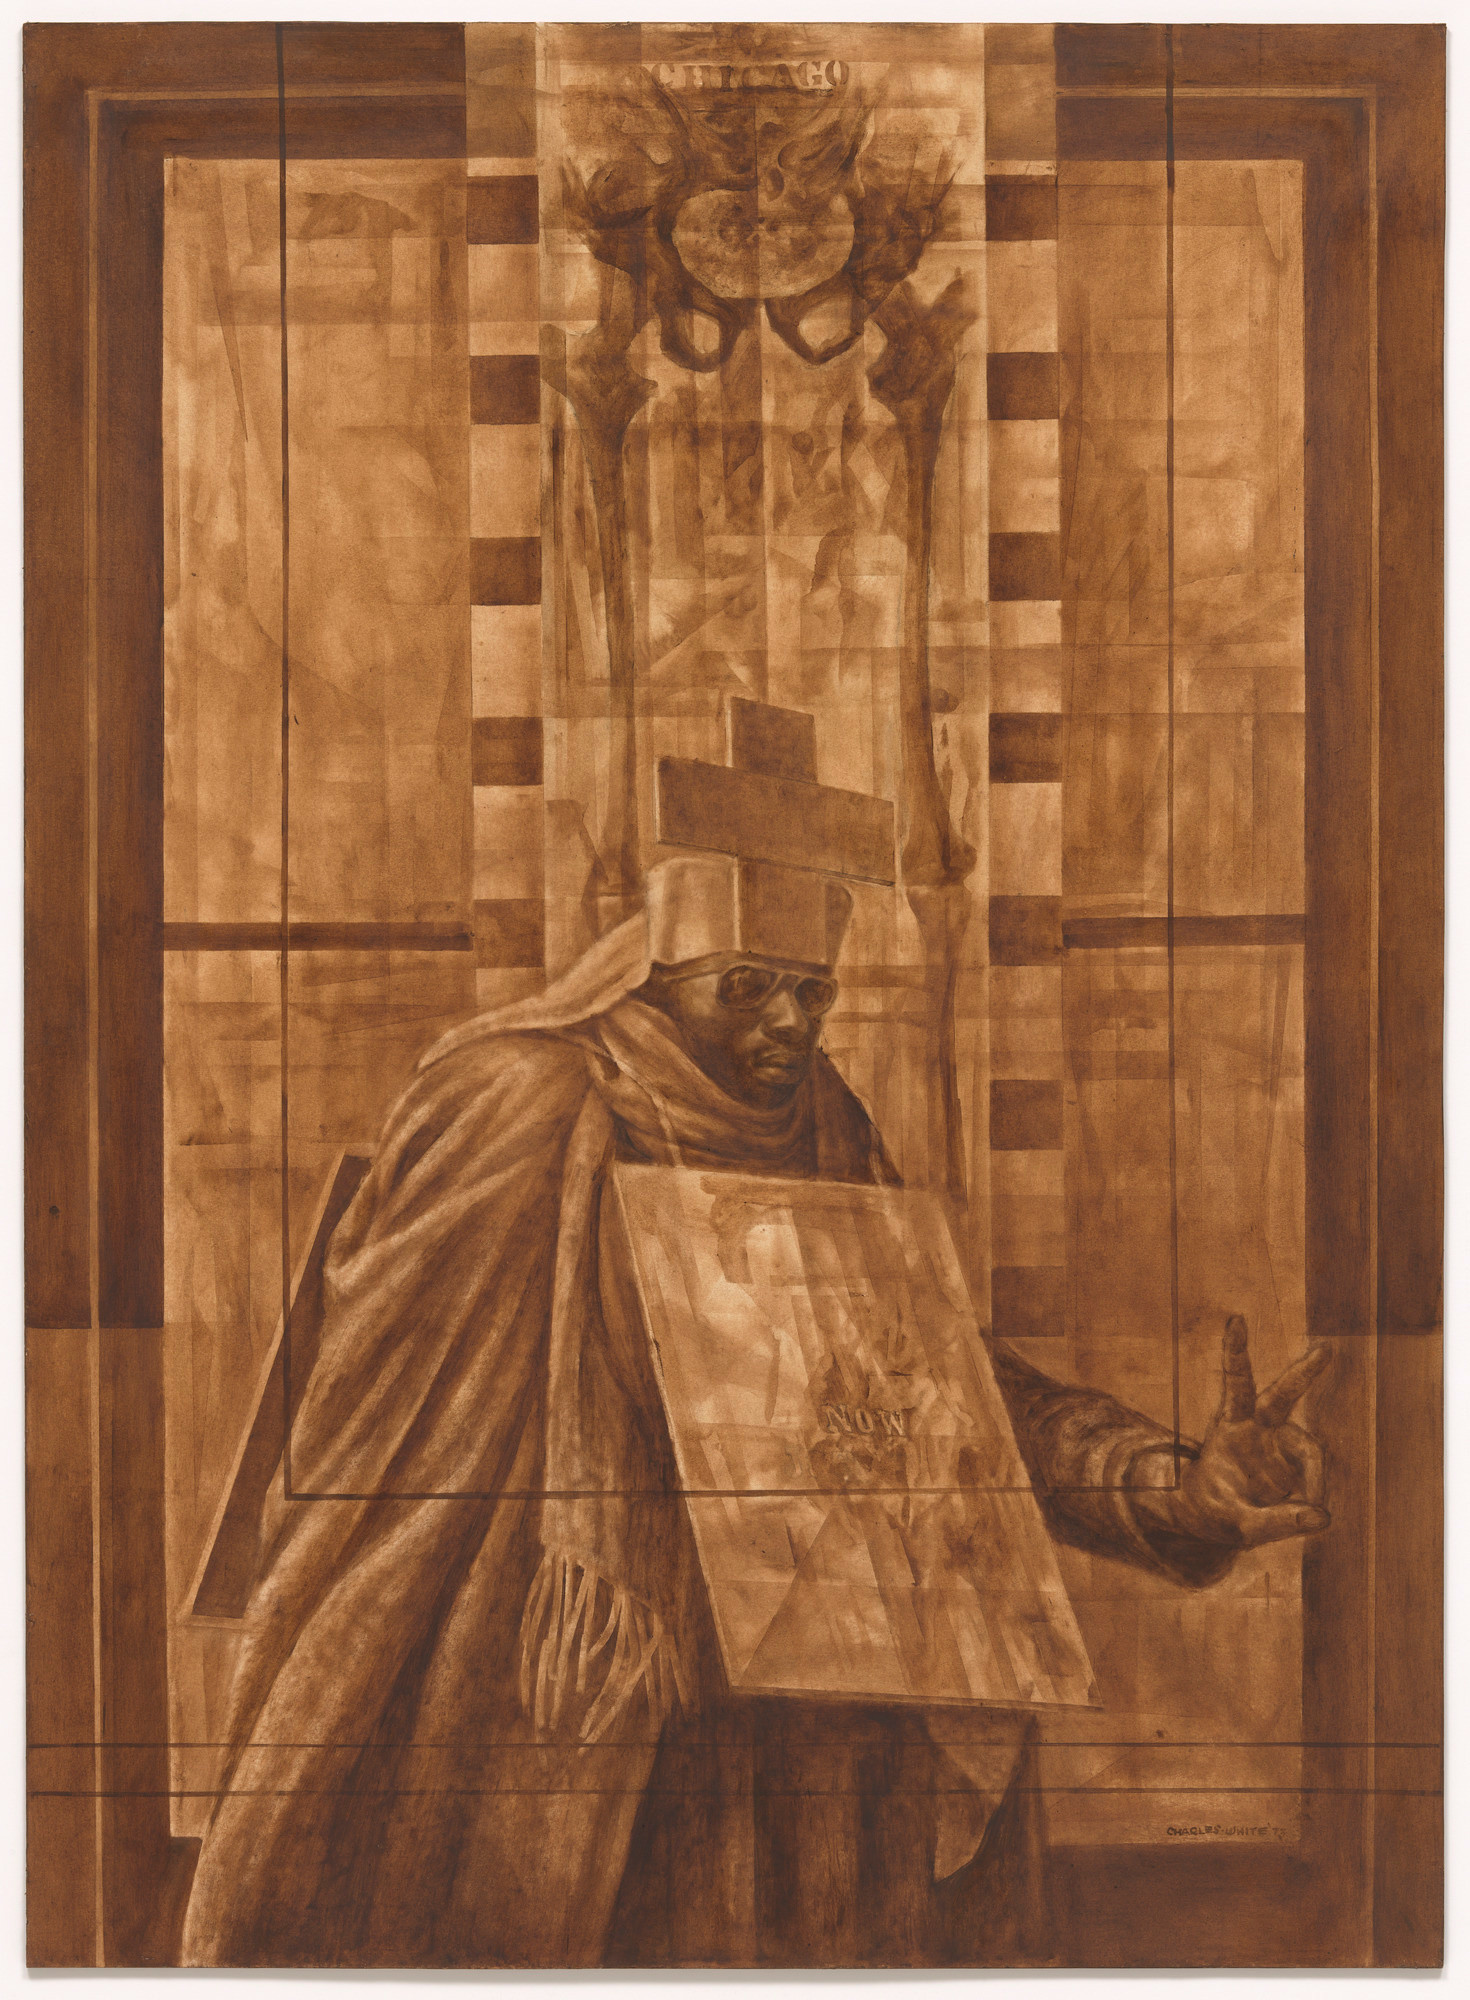 "Charles White. Black Pope (Sandwich Board Man). 1973. Oil wash on board, 60 × 43 7/8"" (152.4 × 111.4 cm). Richard S. Zeisler Bequest (by exchange), The Friends of Education of The Museum of Modern Art, Committee on Drawings Fund, Dian Woodner, and Agnes Gund. © 2017 The Charles White Archives"